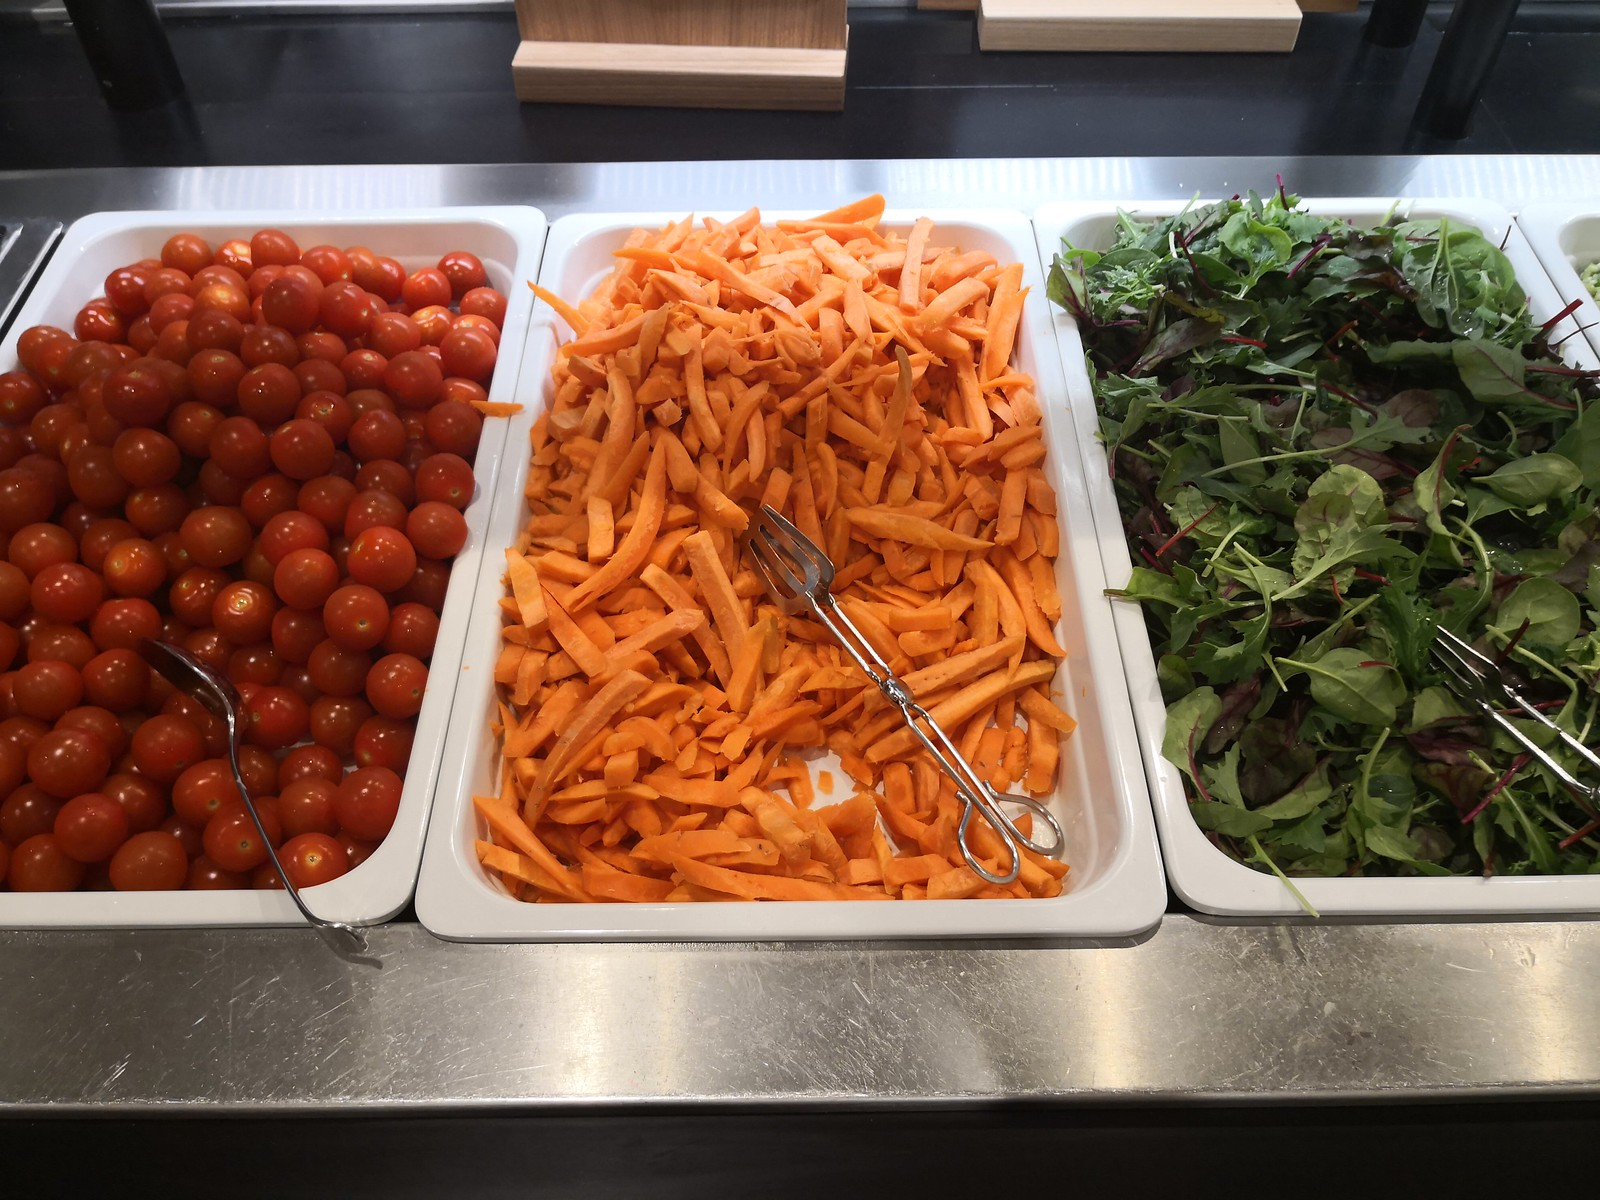 Tomatoes, carrots and mix salad